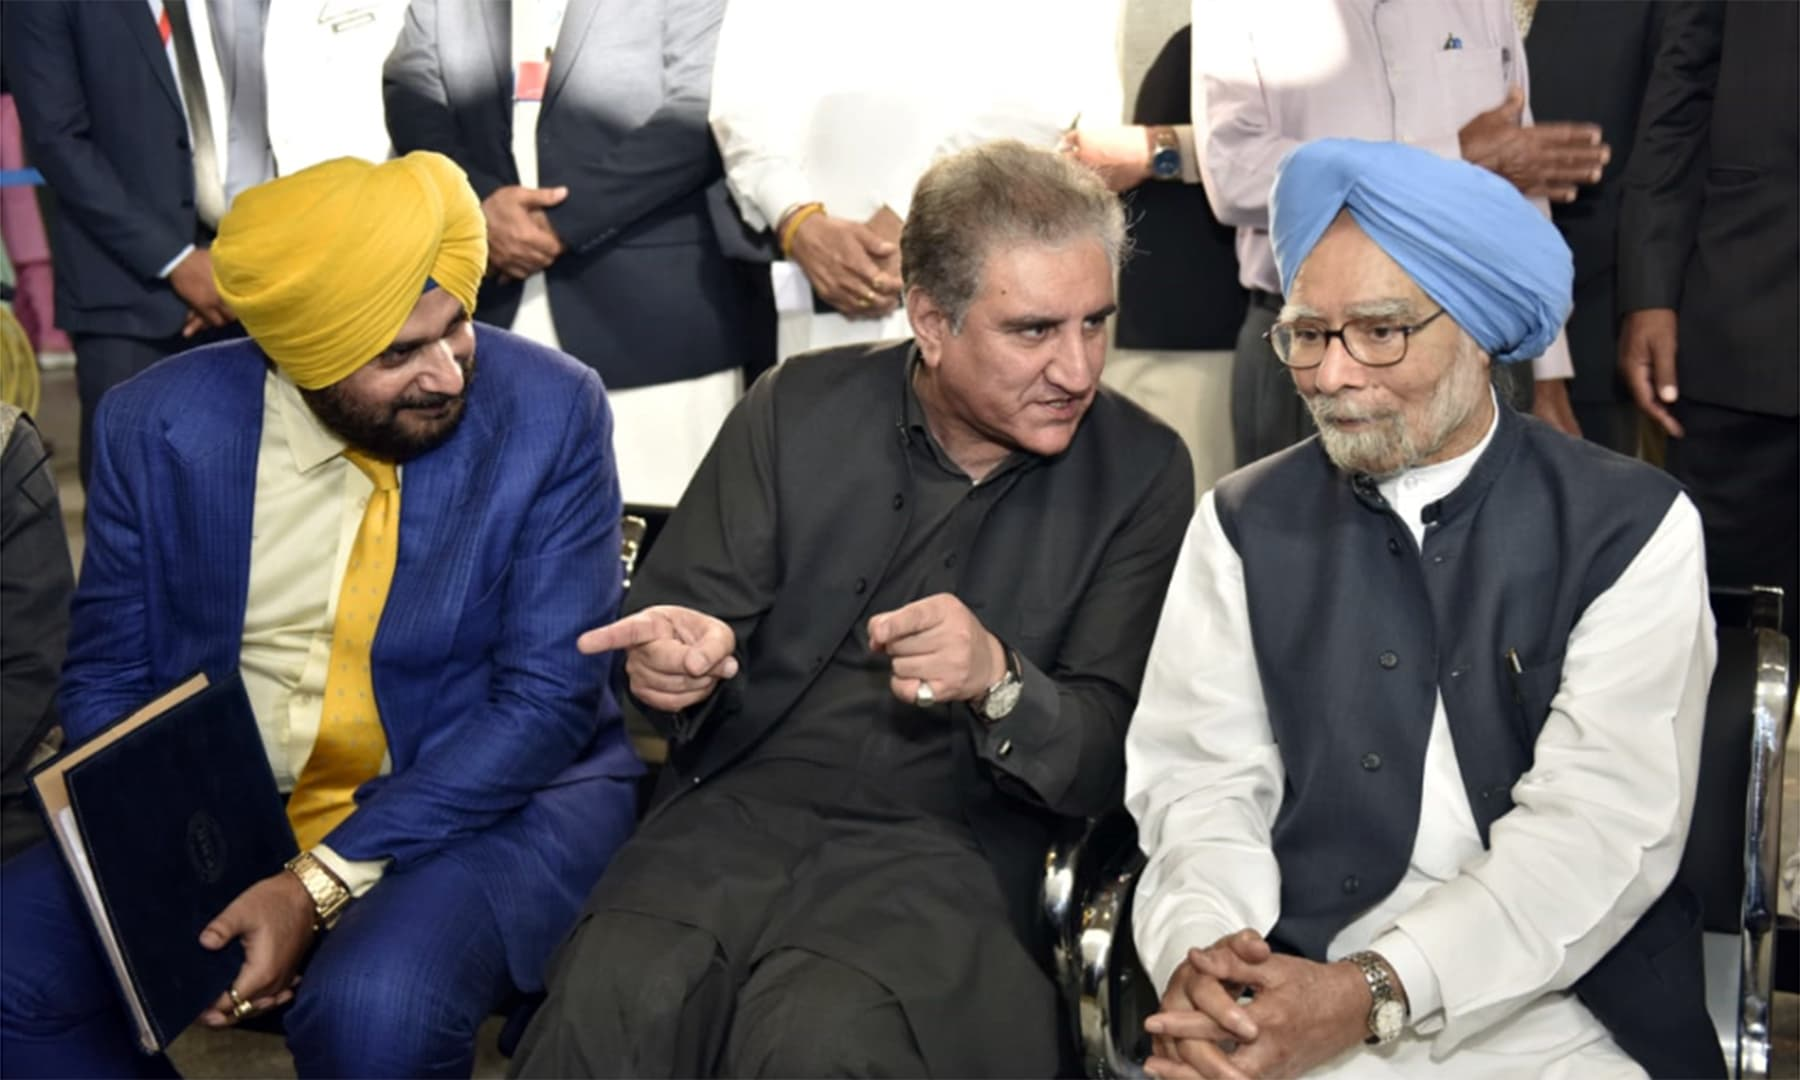 Foreign Minister Shah Mahmood Qureshi speaks with former Indian premier Manmohan Singh and Indian cricketer-turned-politician Navjot Singh Sidhu. — Foreign Office